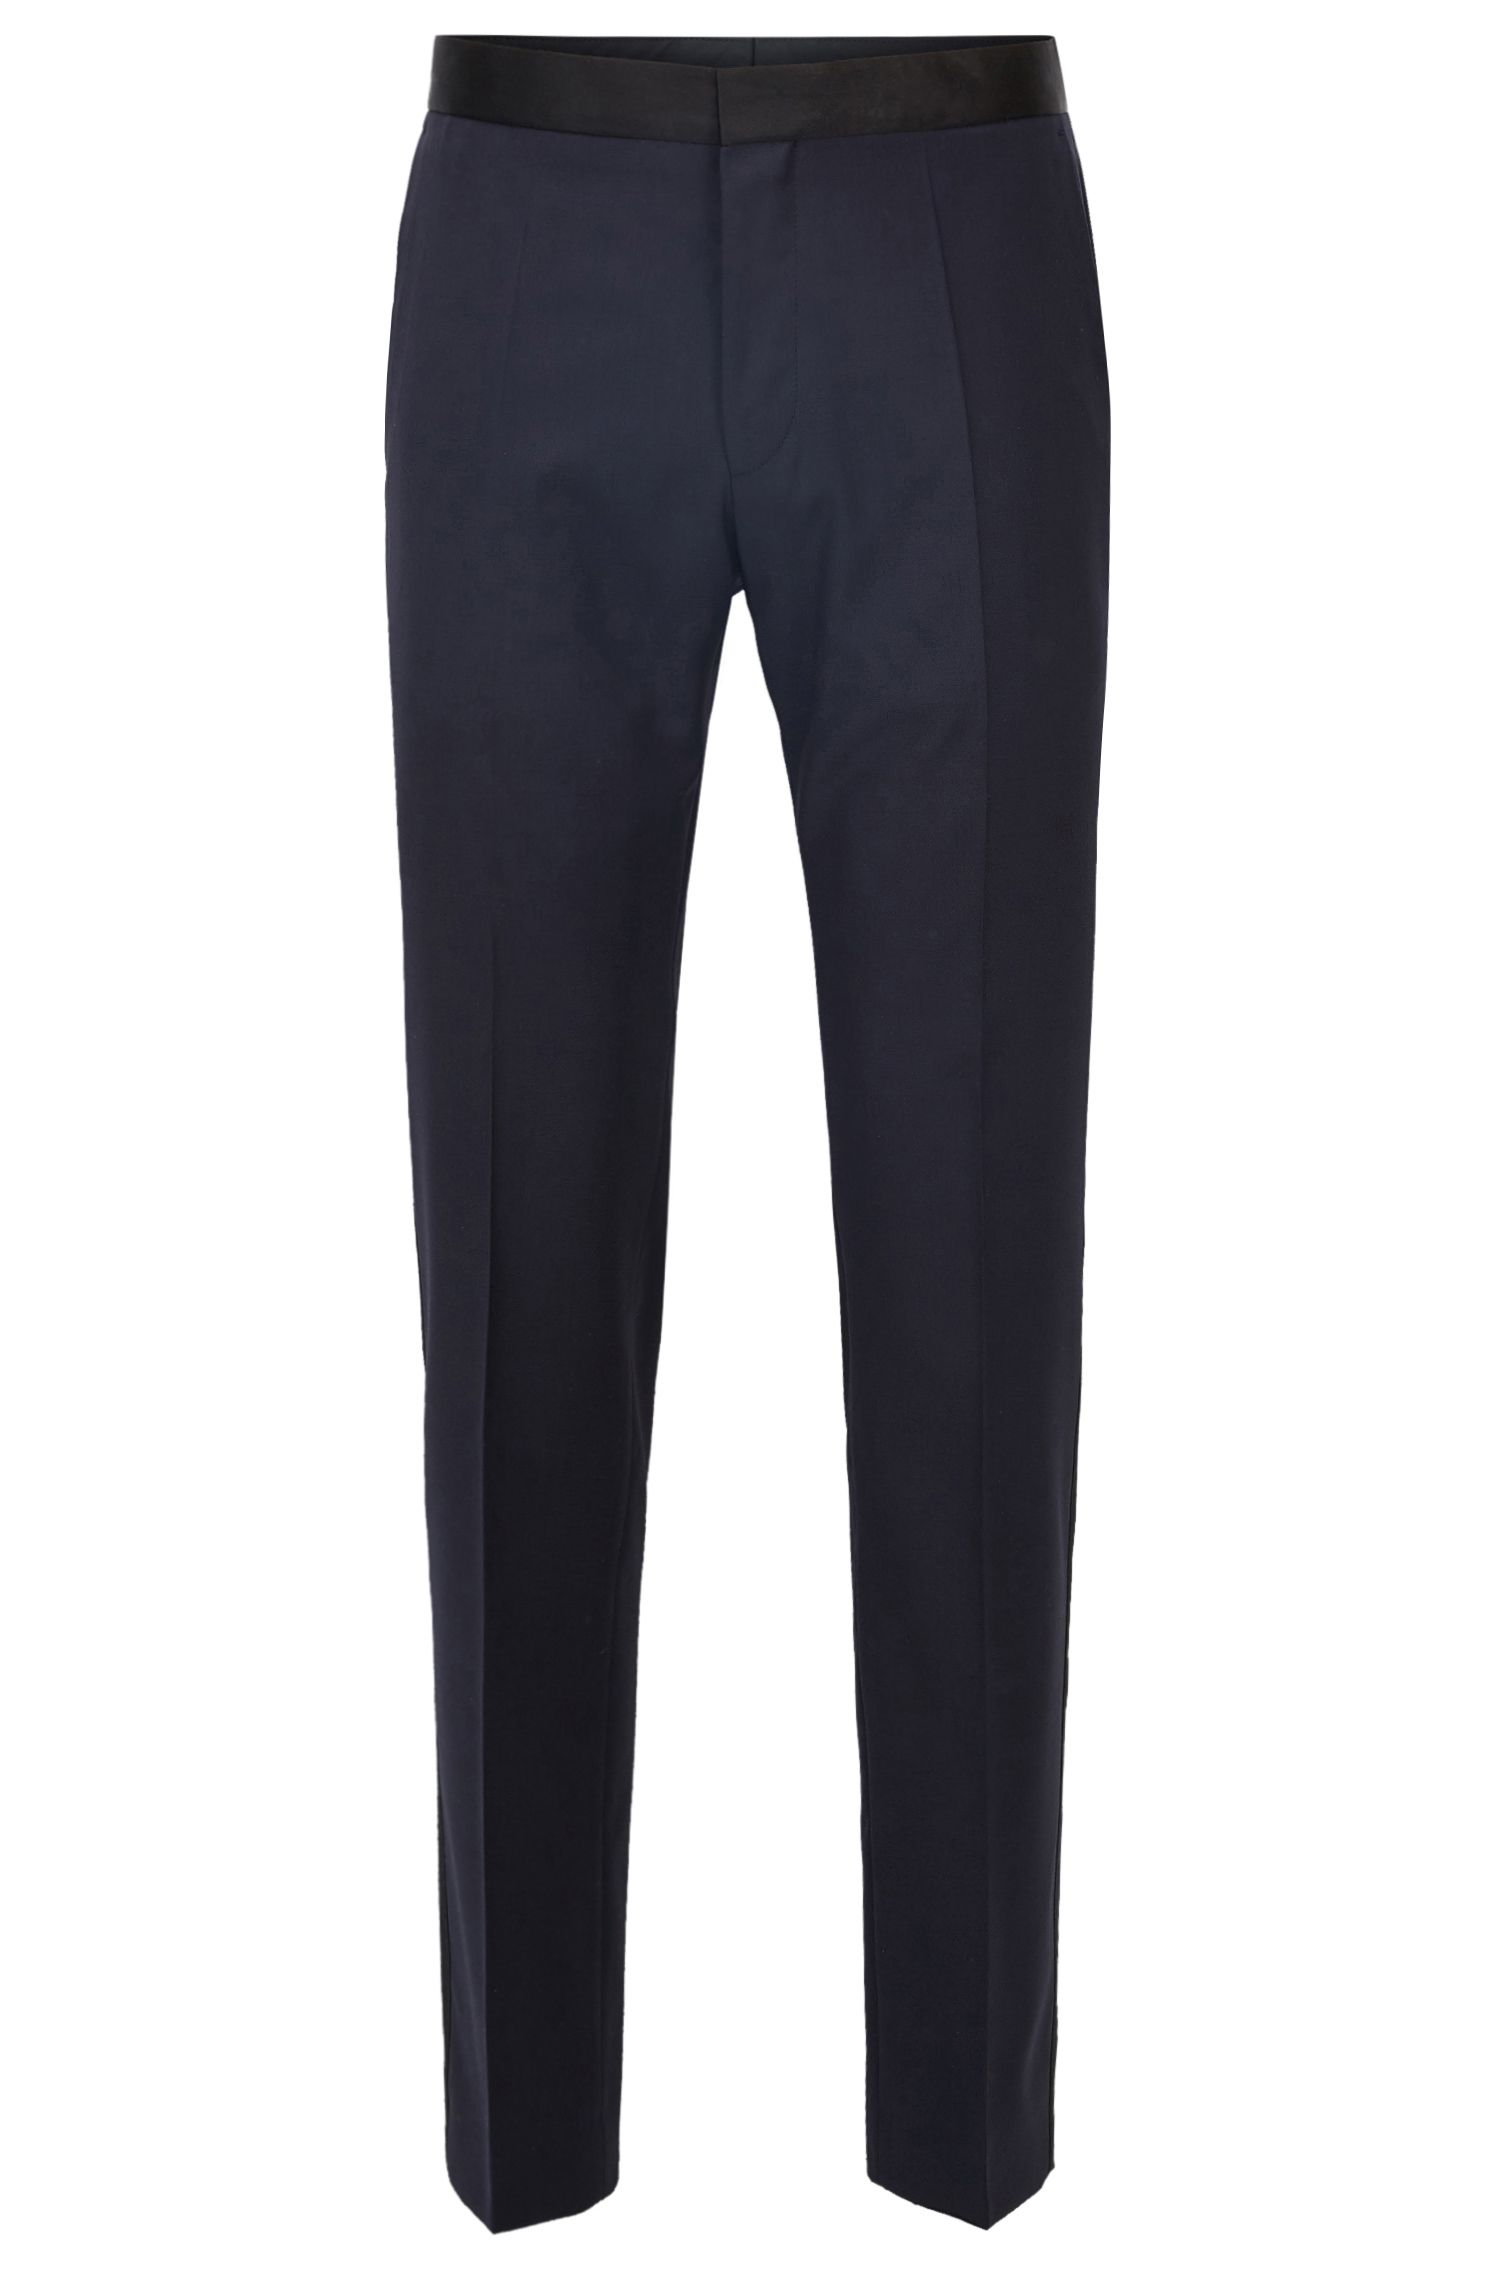 Pantalon business Slim Fit en laine vierge avec finitions en soie